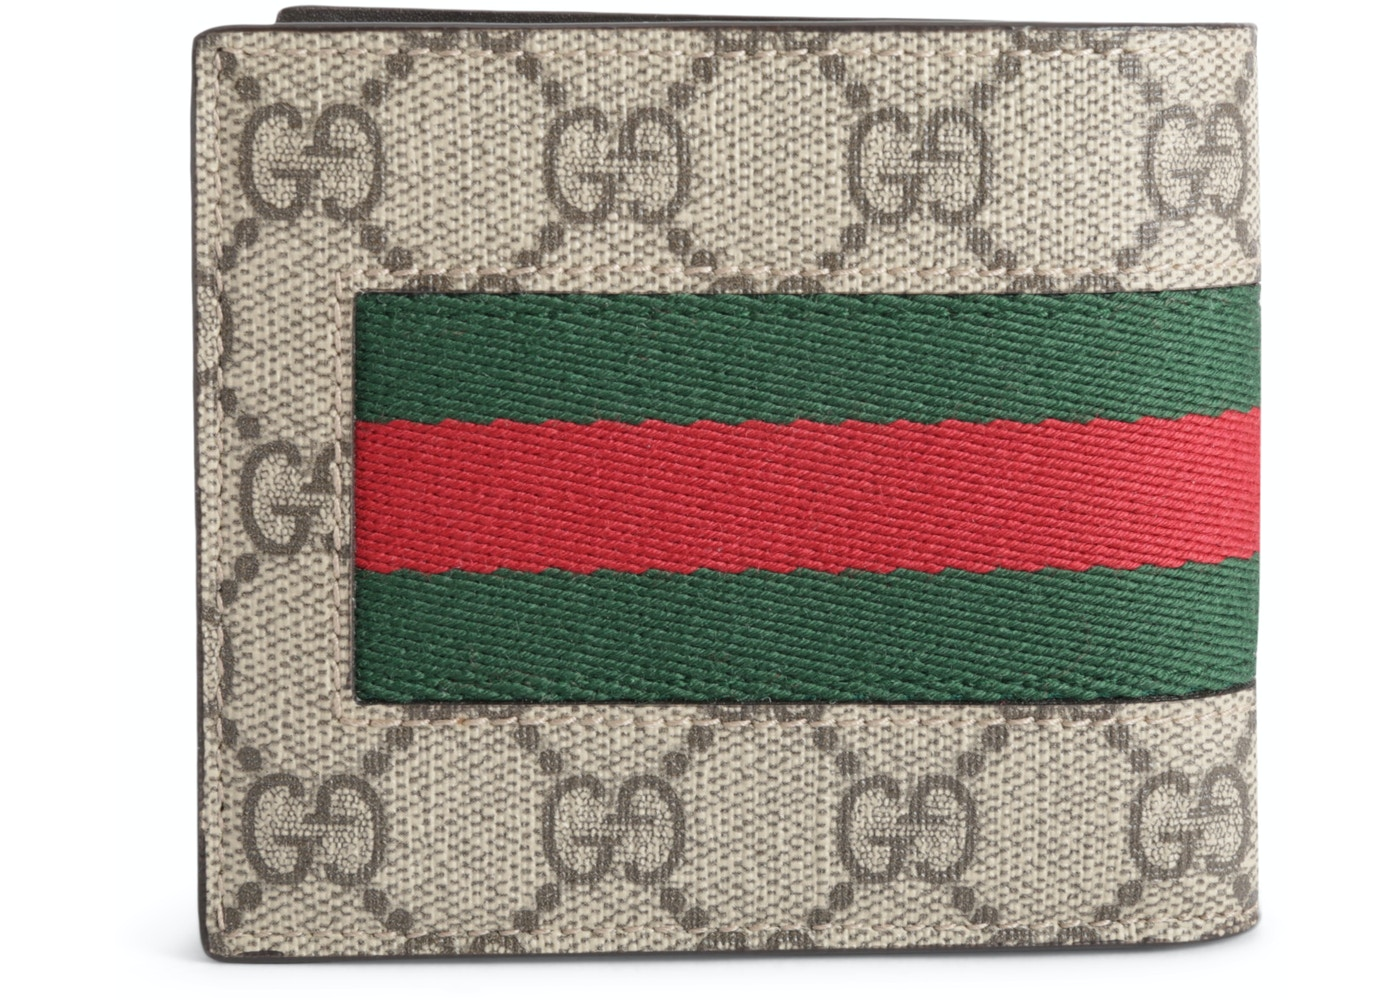 b84c1294d91b Buy & Sell Gucci Handbags - New Lowest Asks